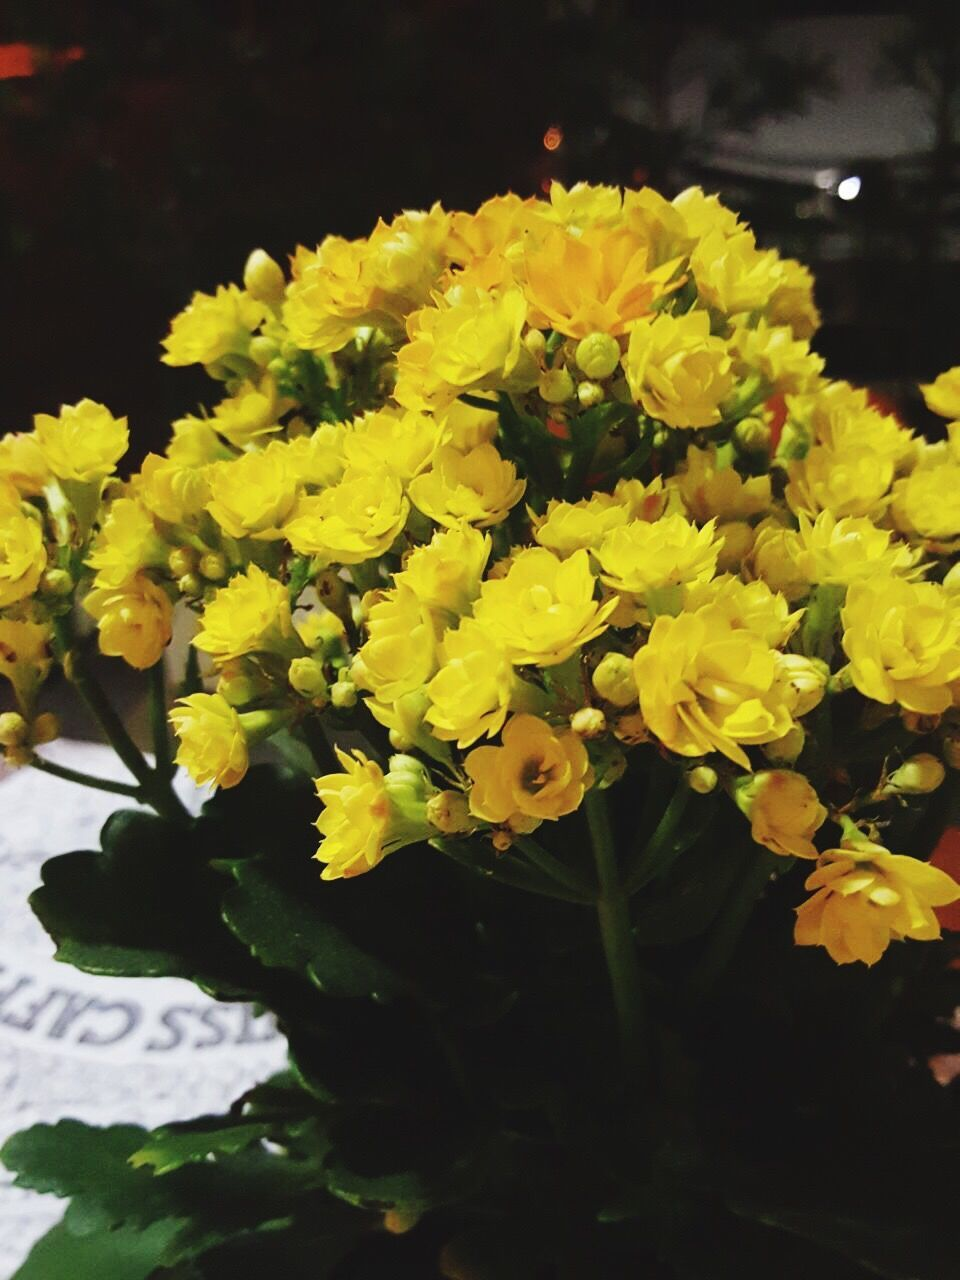 flower, nature, growth, beauty in nature, yellow, fragility, petal, freshness, plant, outdoors, no people, close-up, flower head, day